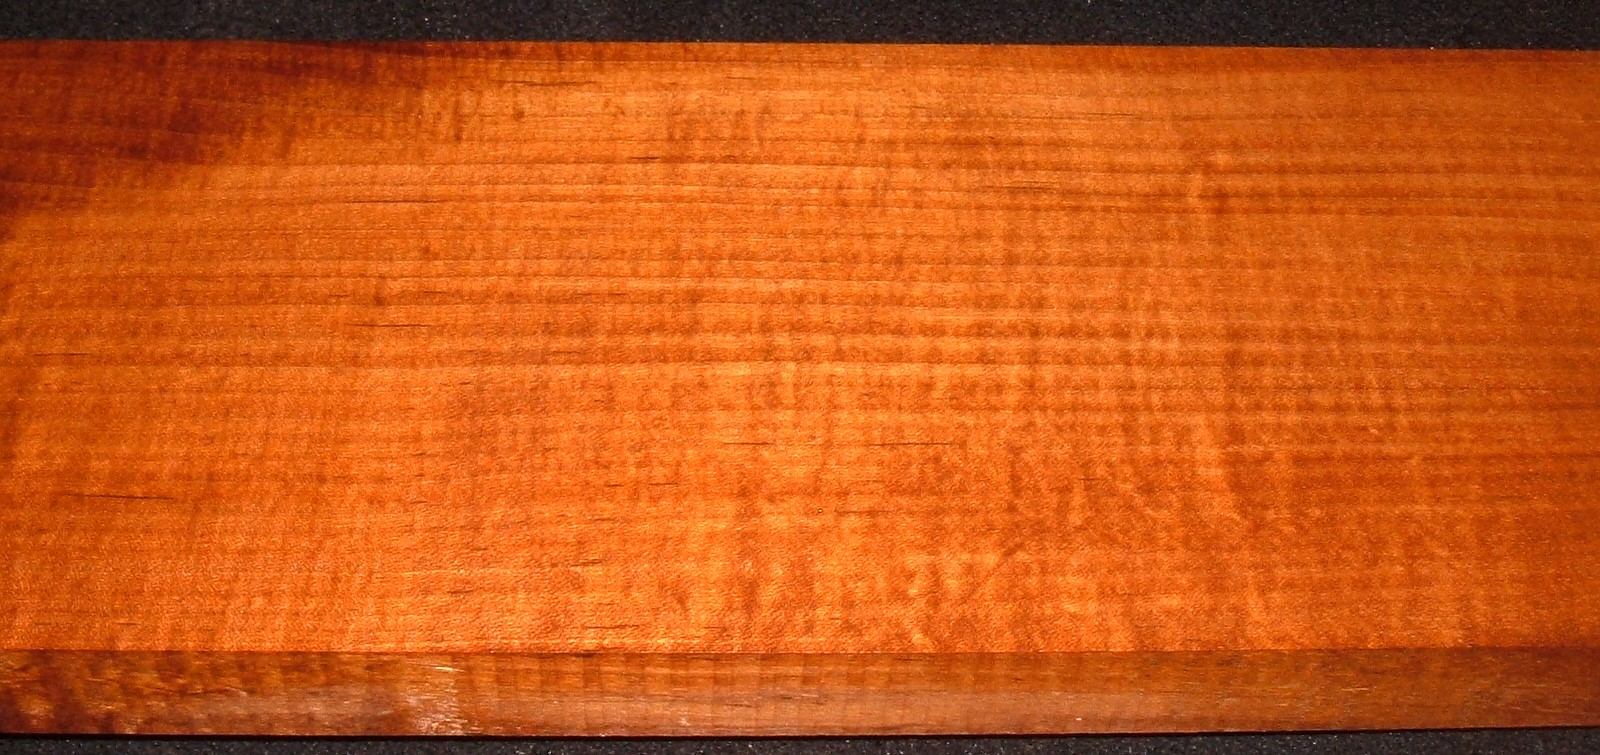 QRM2103-103JK, 1-1/8x6-1/8x34, Roasted Torrefied, Curly Tiger Quartersawn Maple